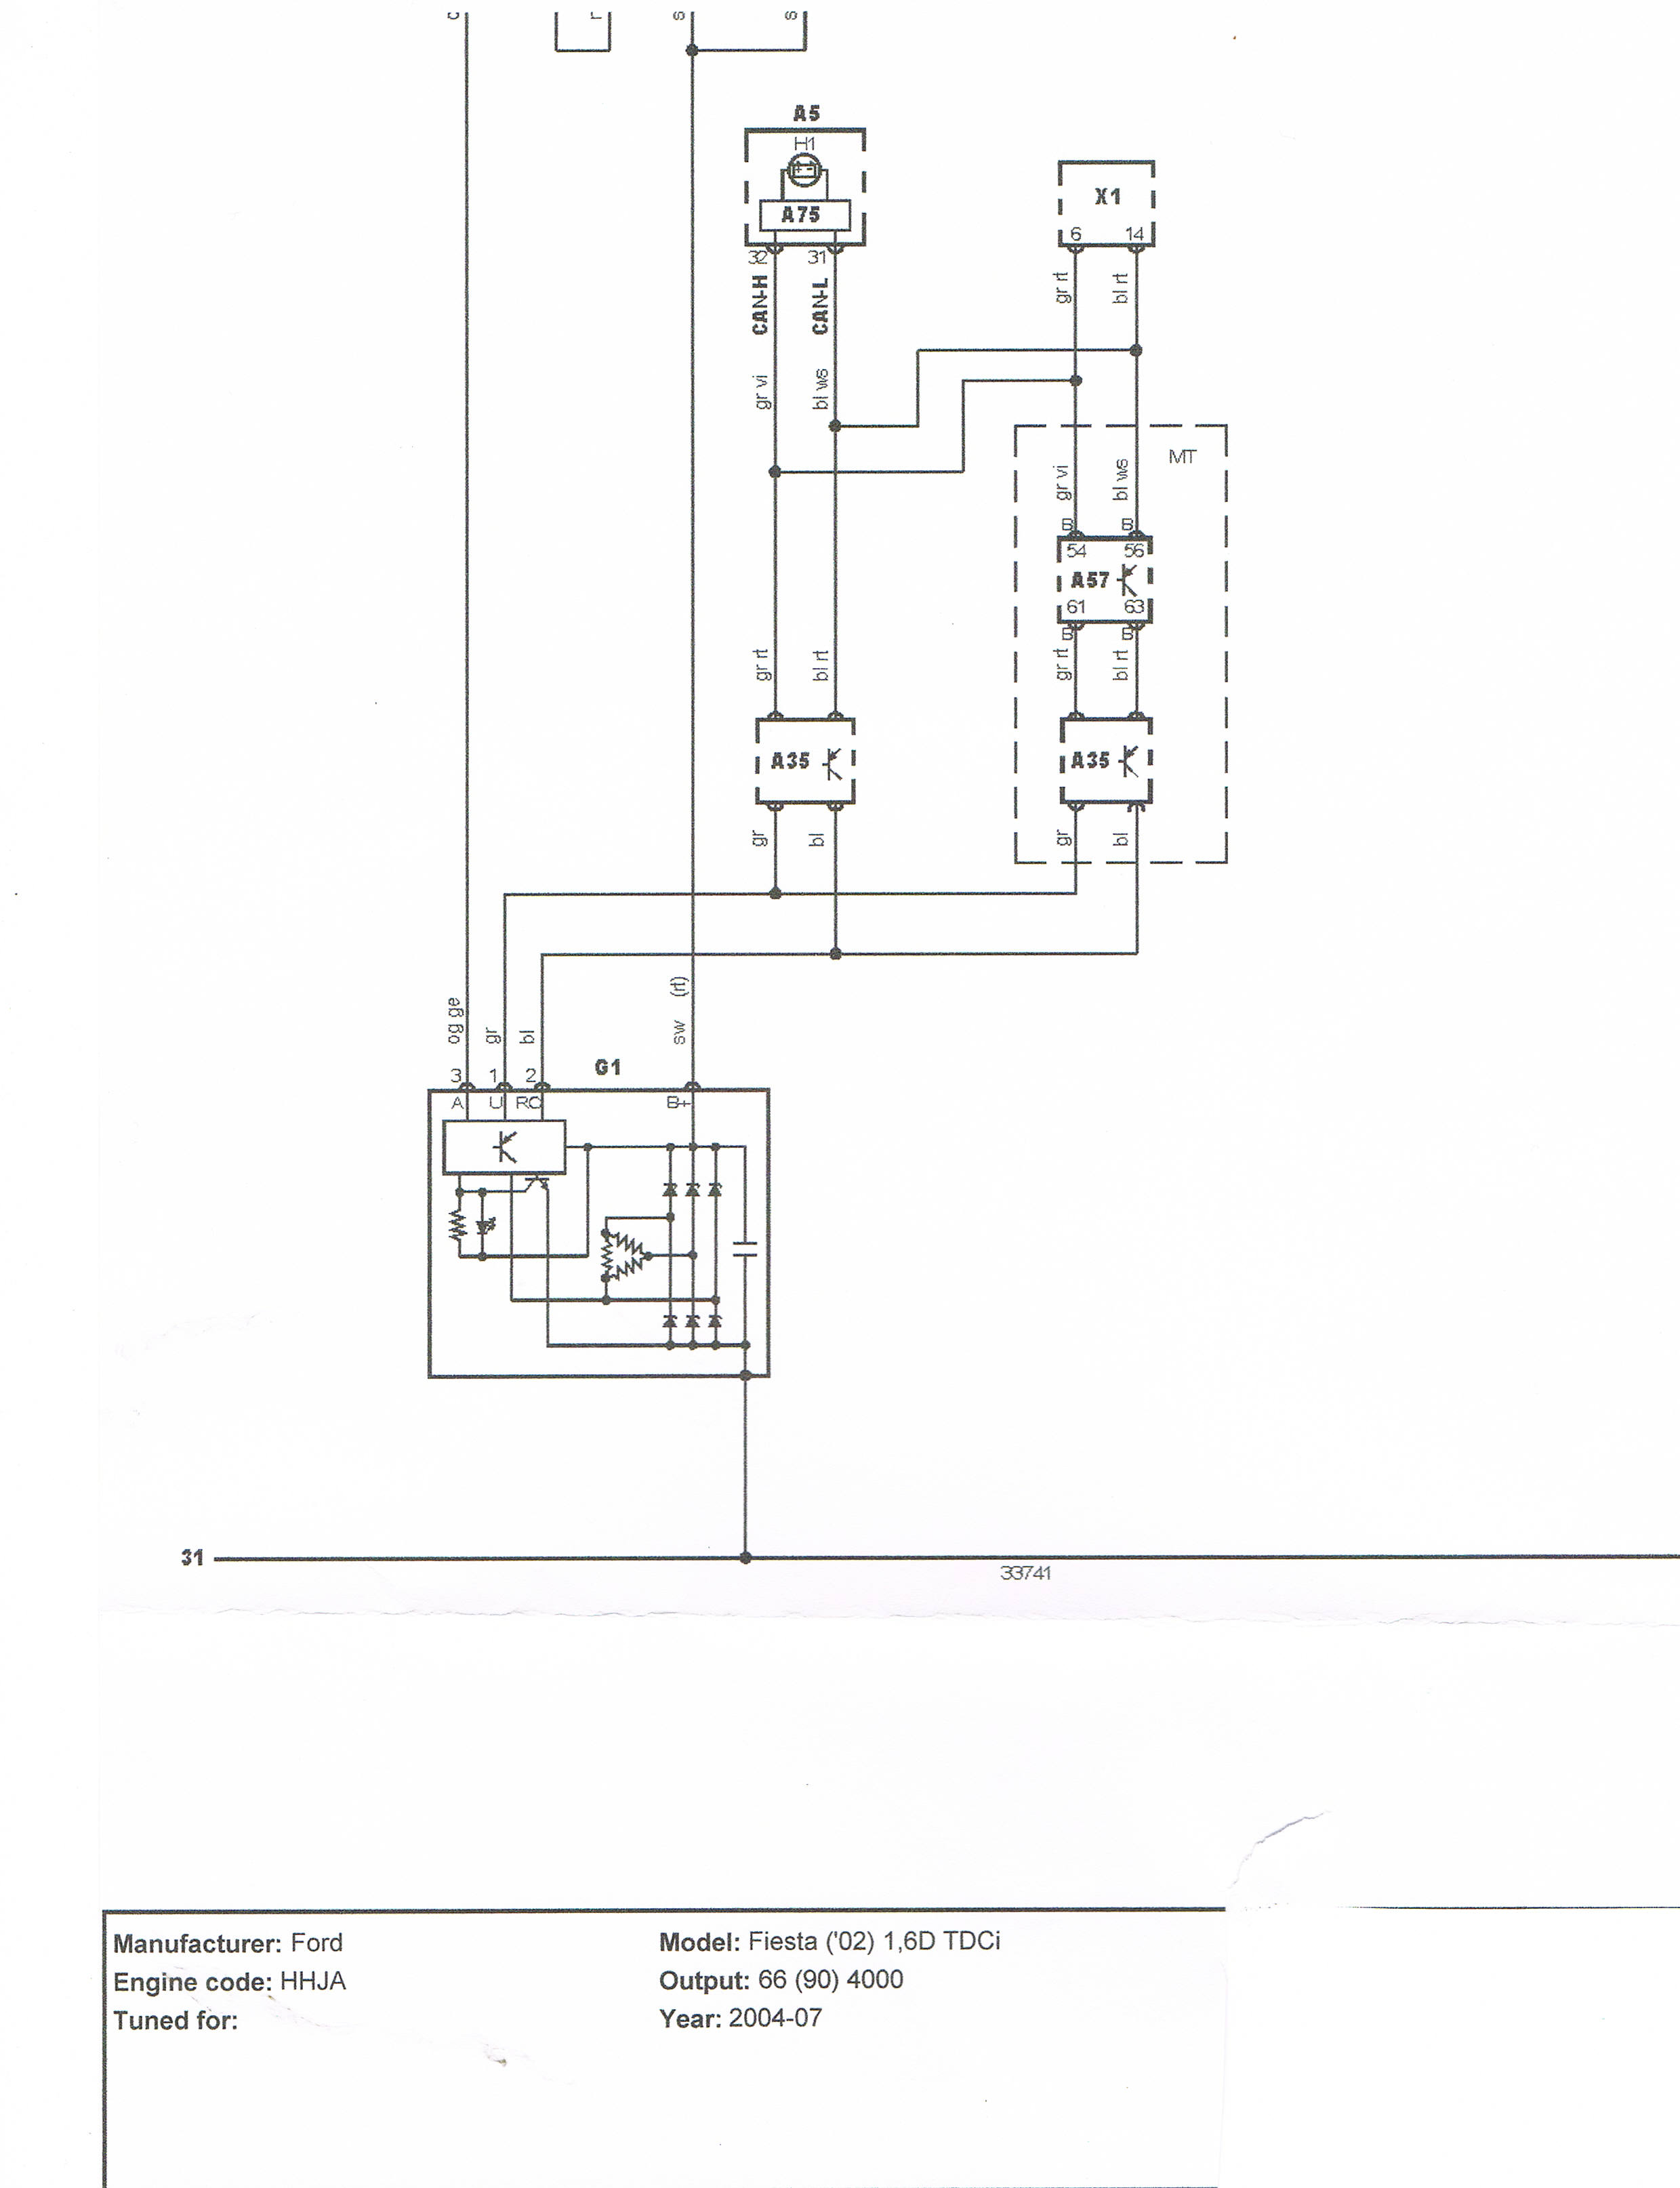 wiring diagram 2011 ford fiesta ford fiesta ecu wiring diagram wiring diagrams ford fiesta mk7 radio wiring diagram schematics and diagrams